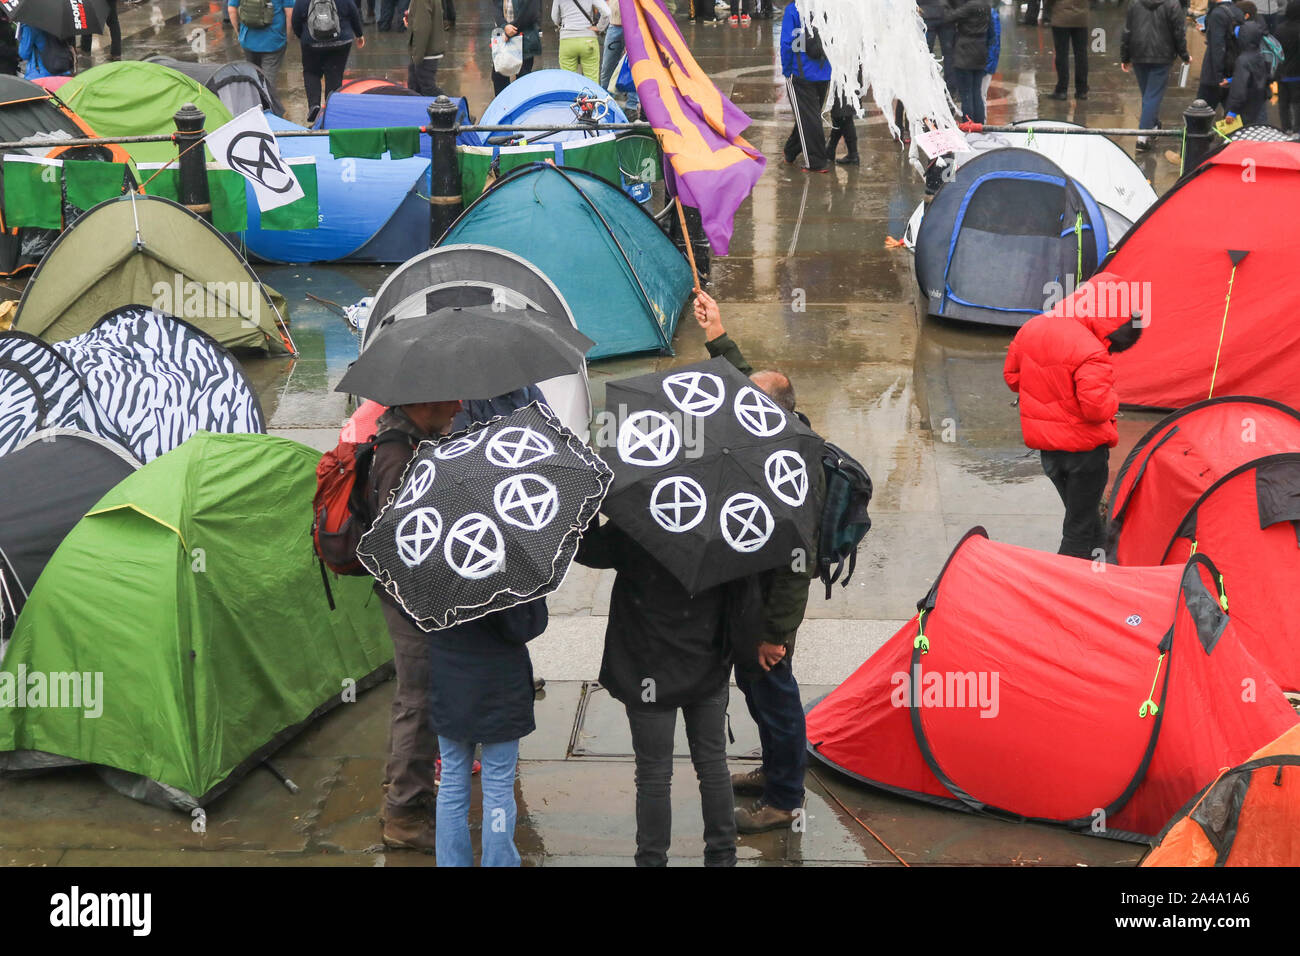 London, UK - 13 October 2019. Claimate activists from Extinction Rebellion continue their protest as they camp out in Trafalgar Square in an attempt to force the government to declare a climate emergency and meet their demands to reduce to zero carbon emmissions by 2025. Credit: amer ghazzal/Alamy Live News Stock Photo